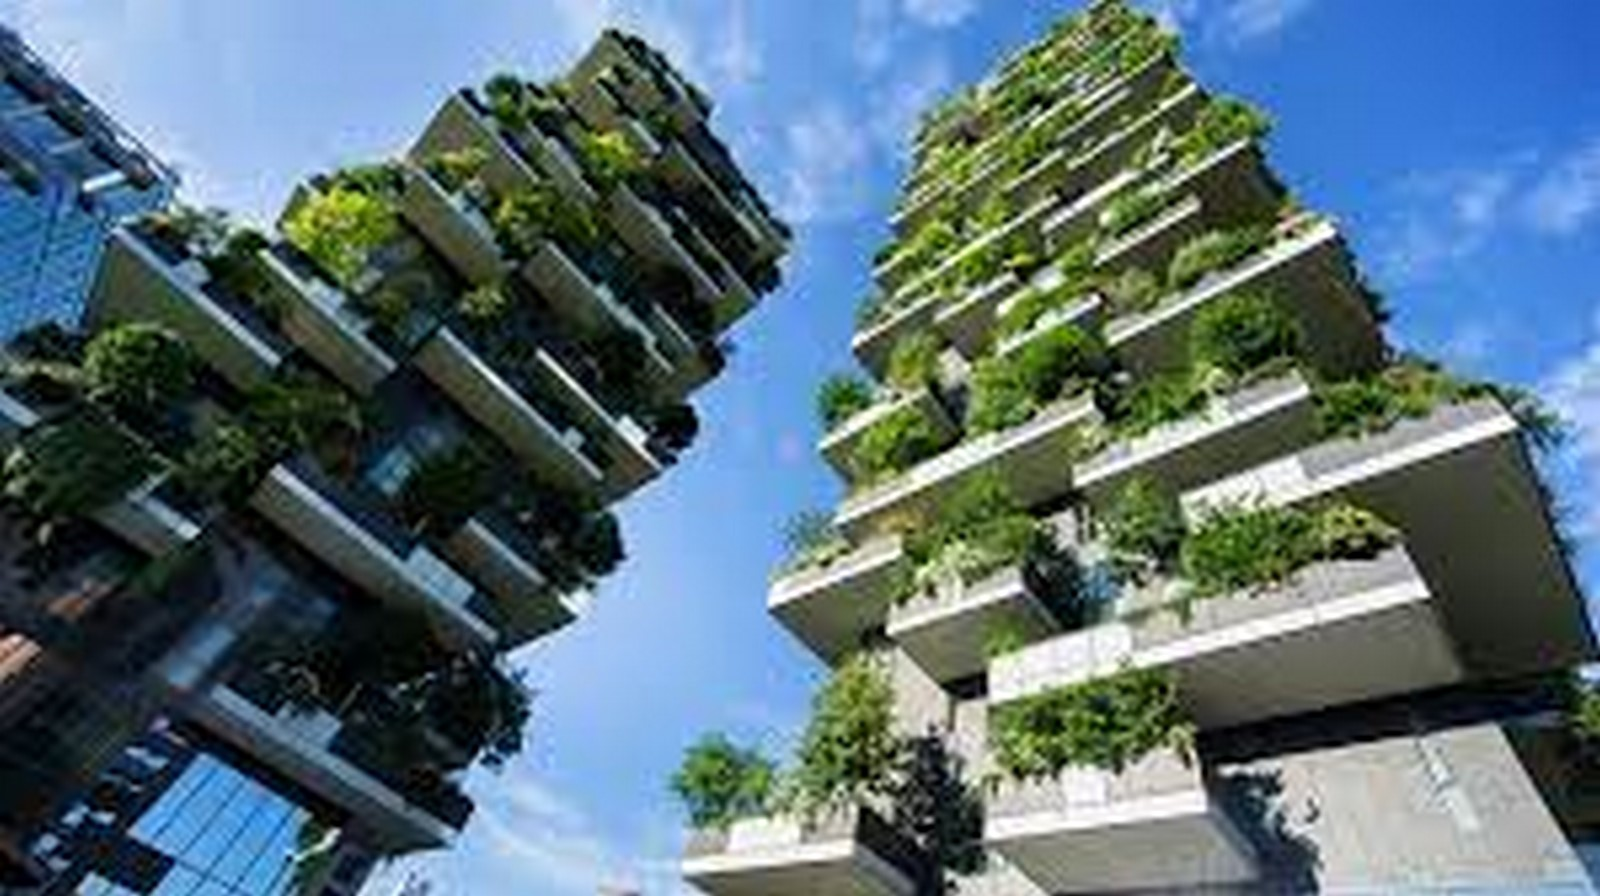 Will Sustainability and Technology together change the way we live? Sheet2